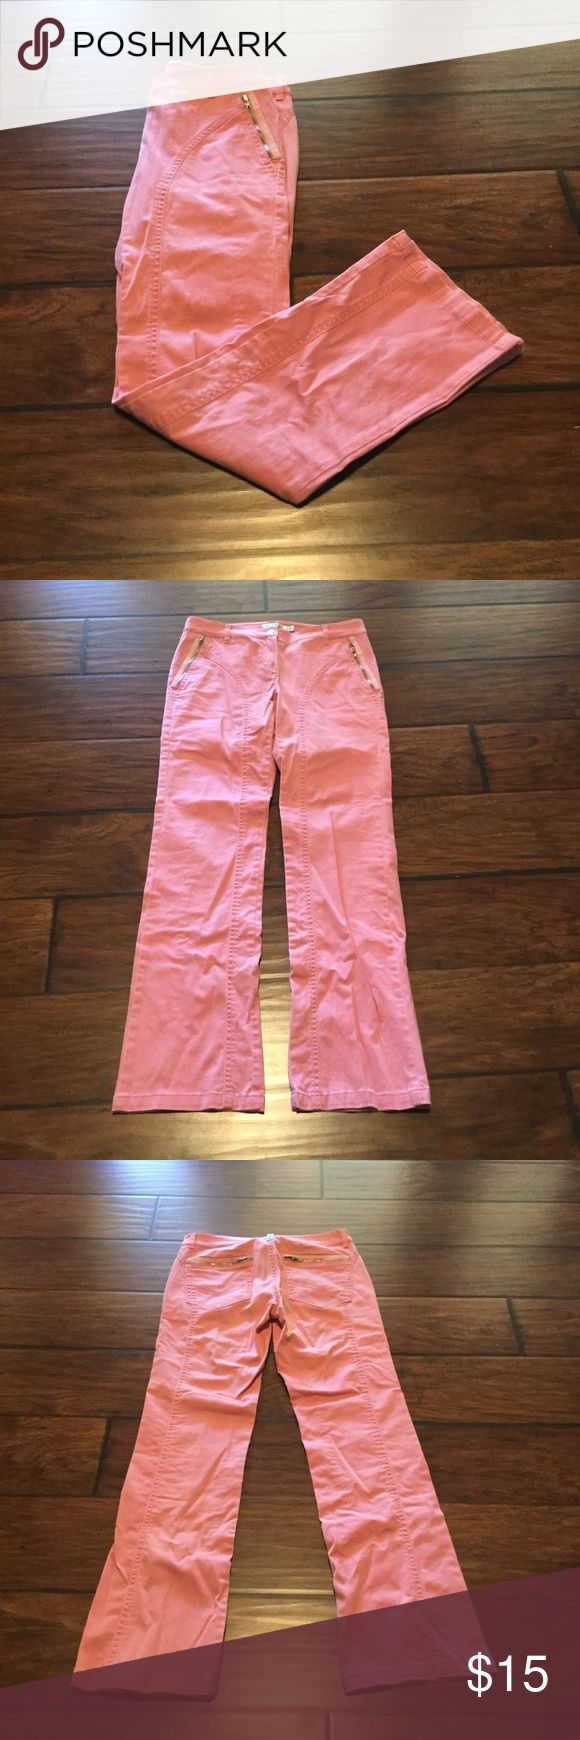 "**SALE** Cute coral pink pants Super cute coral pink color straight leg pants.  With zipper pockets in front and back.  Soft cotton materials, fits very well.  Size M, waist 28"".  Barely worn, like new! Ochirly Pants Straight Leg"